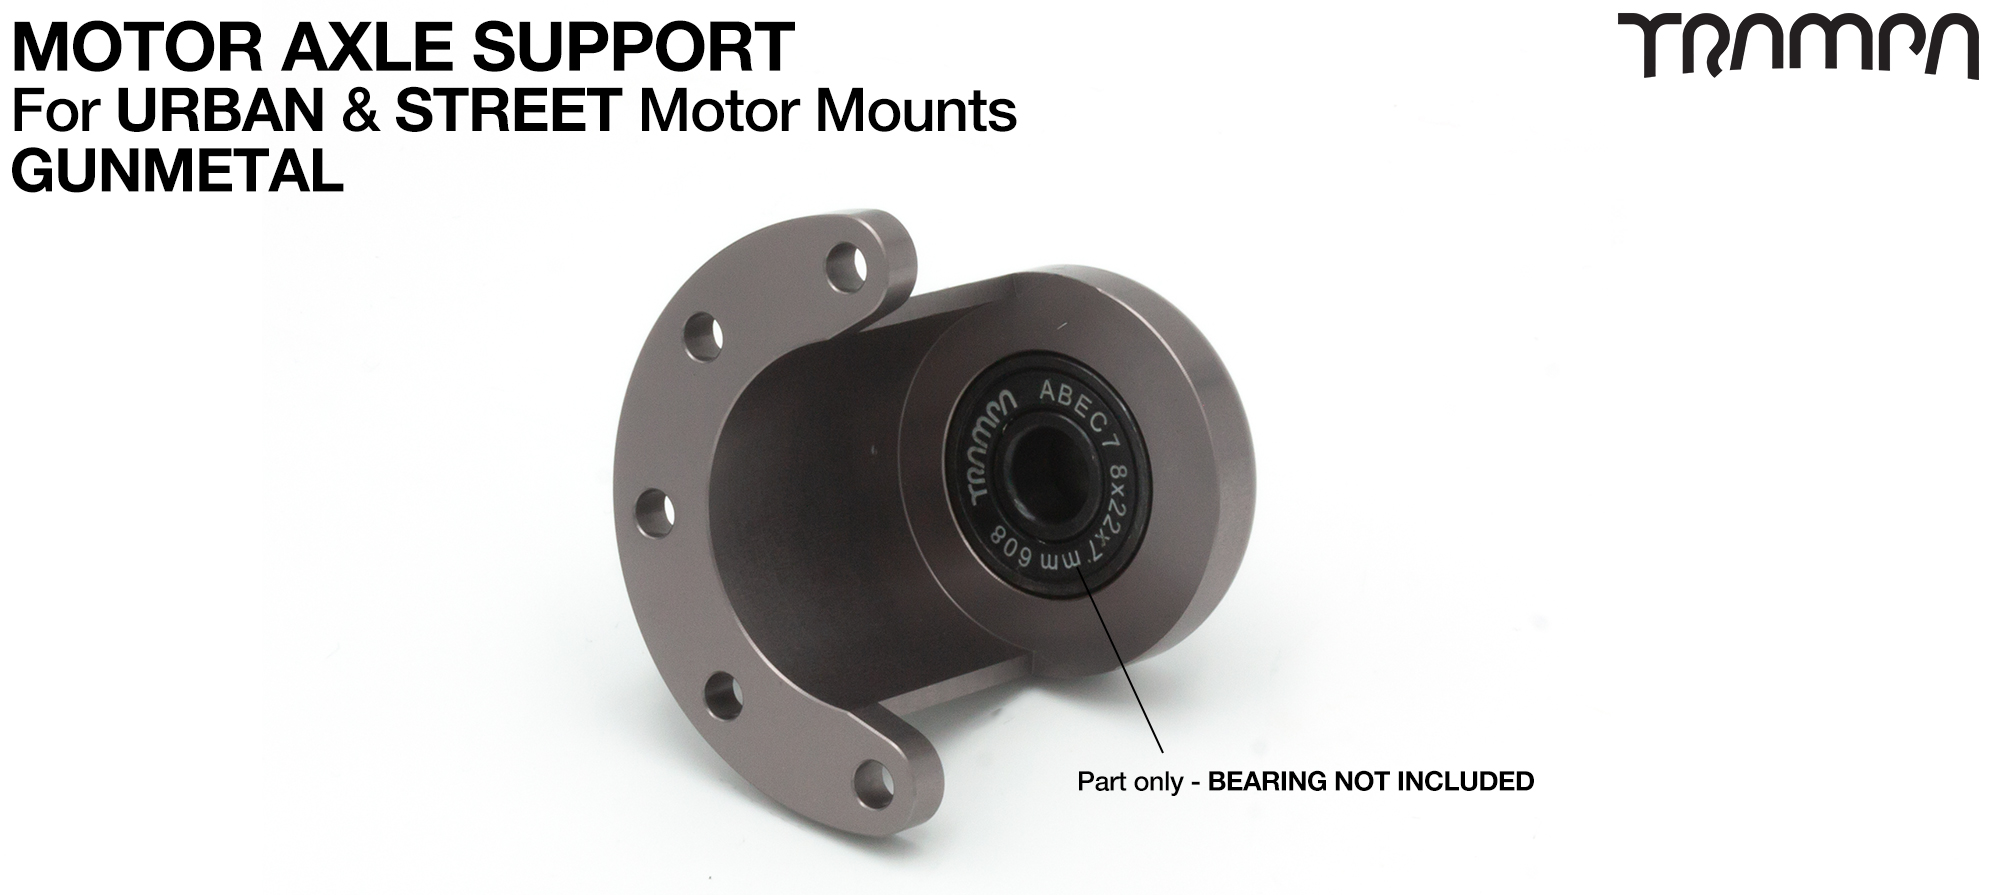 Motor Axle Support for Spring Truck Motor Mounts UNIVERSAL - GUNMETAL